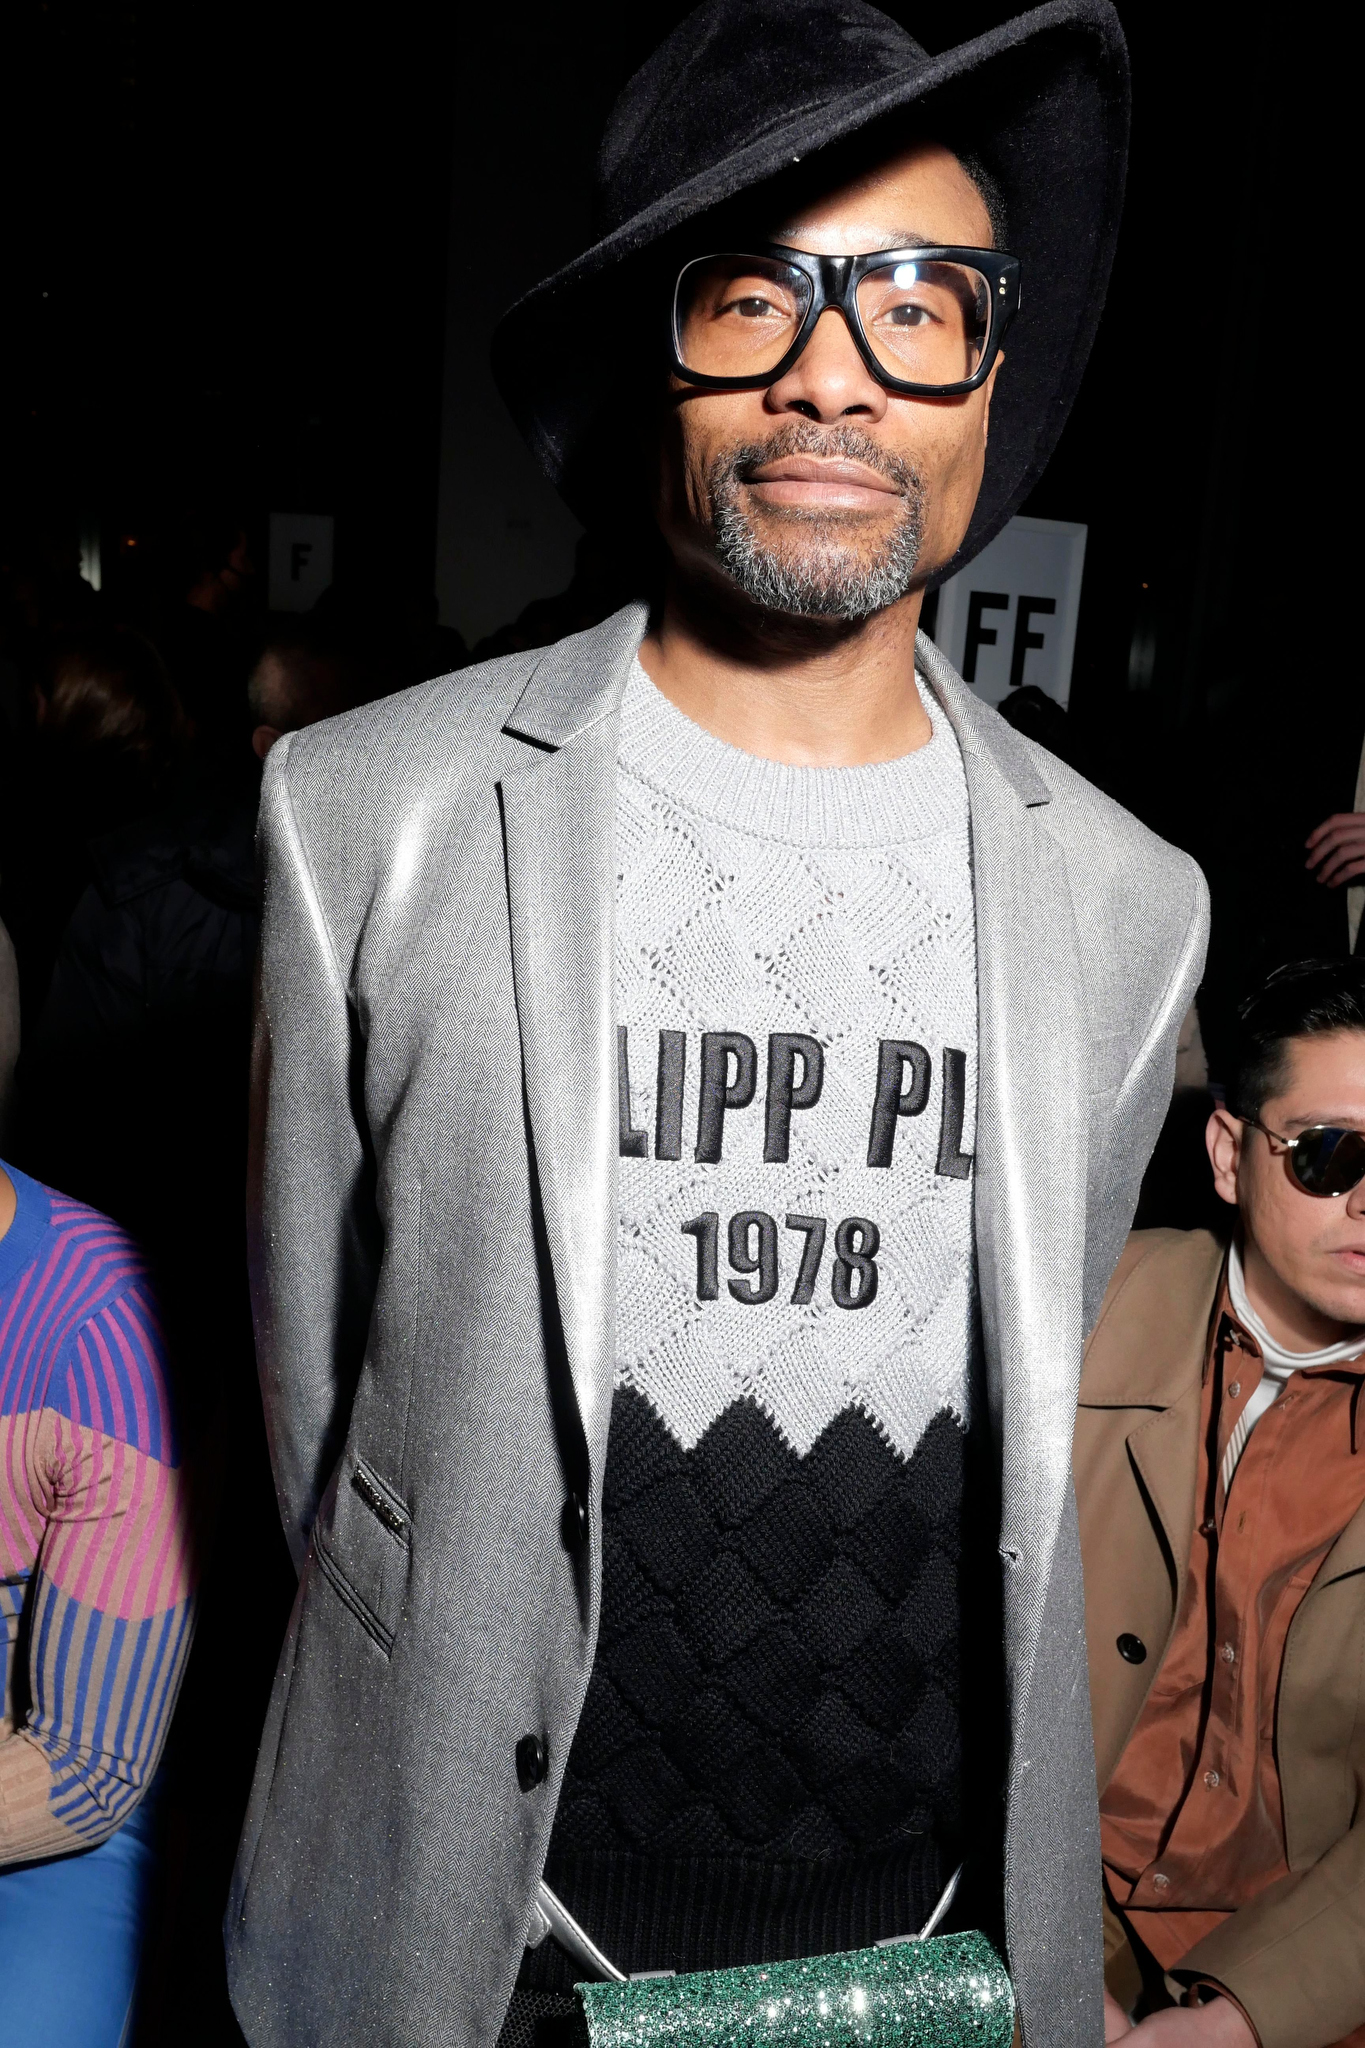 Billy Porter in the front rowPrabal Gurung show, Front Row, Fall Winter 2019, New York Fashion Week, USA - 10 Feb 2019